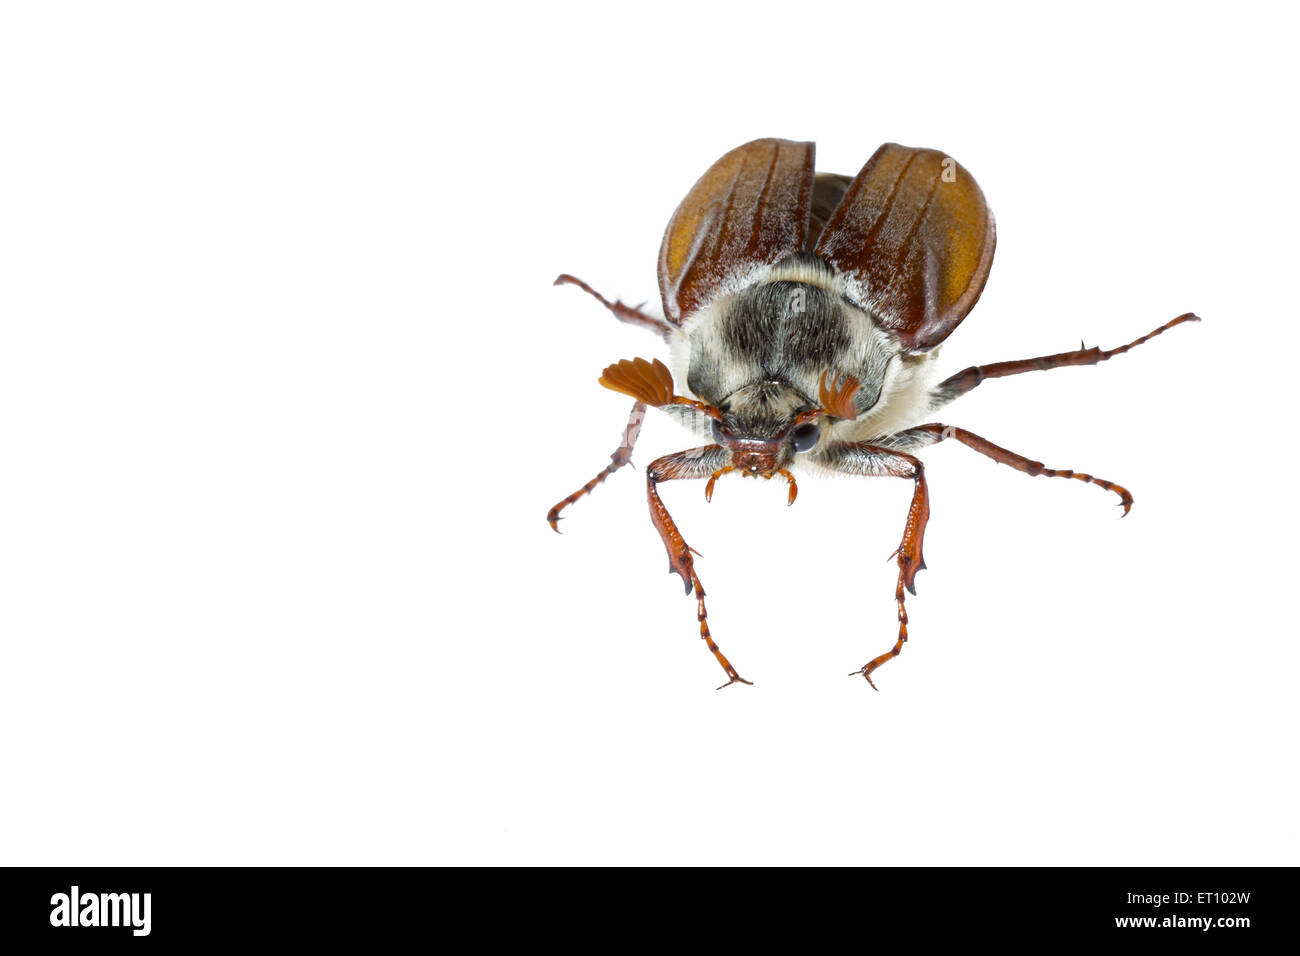 Cockchafer - May Bug against bright white background using outdoor studio - Stock Image